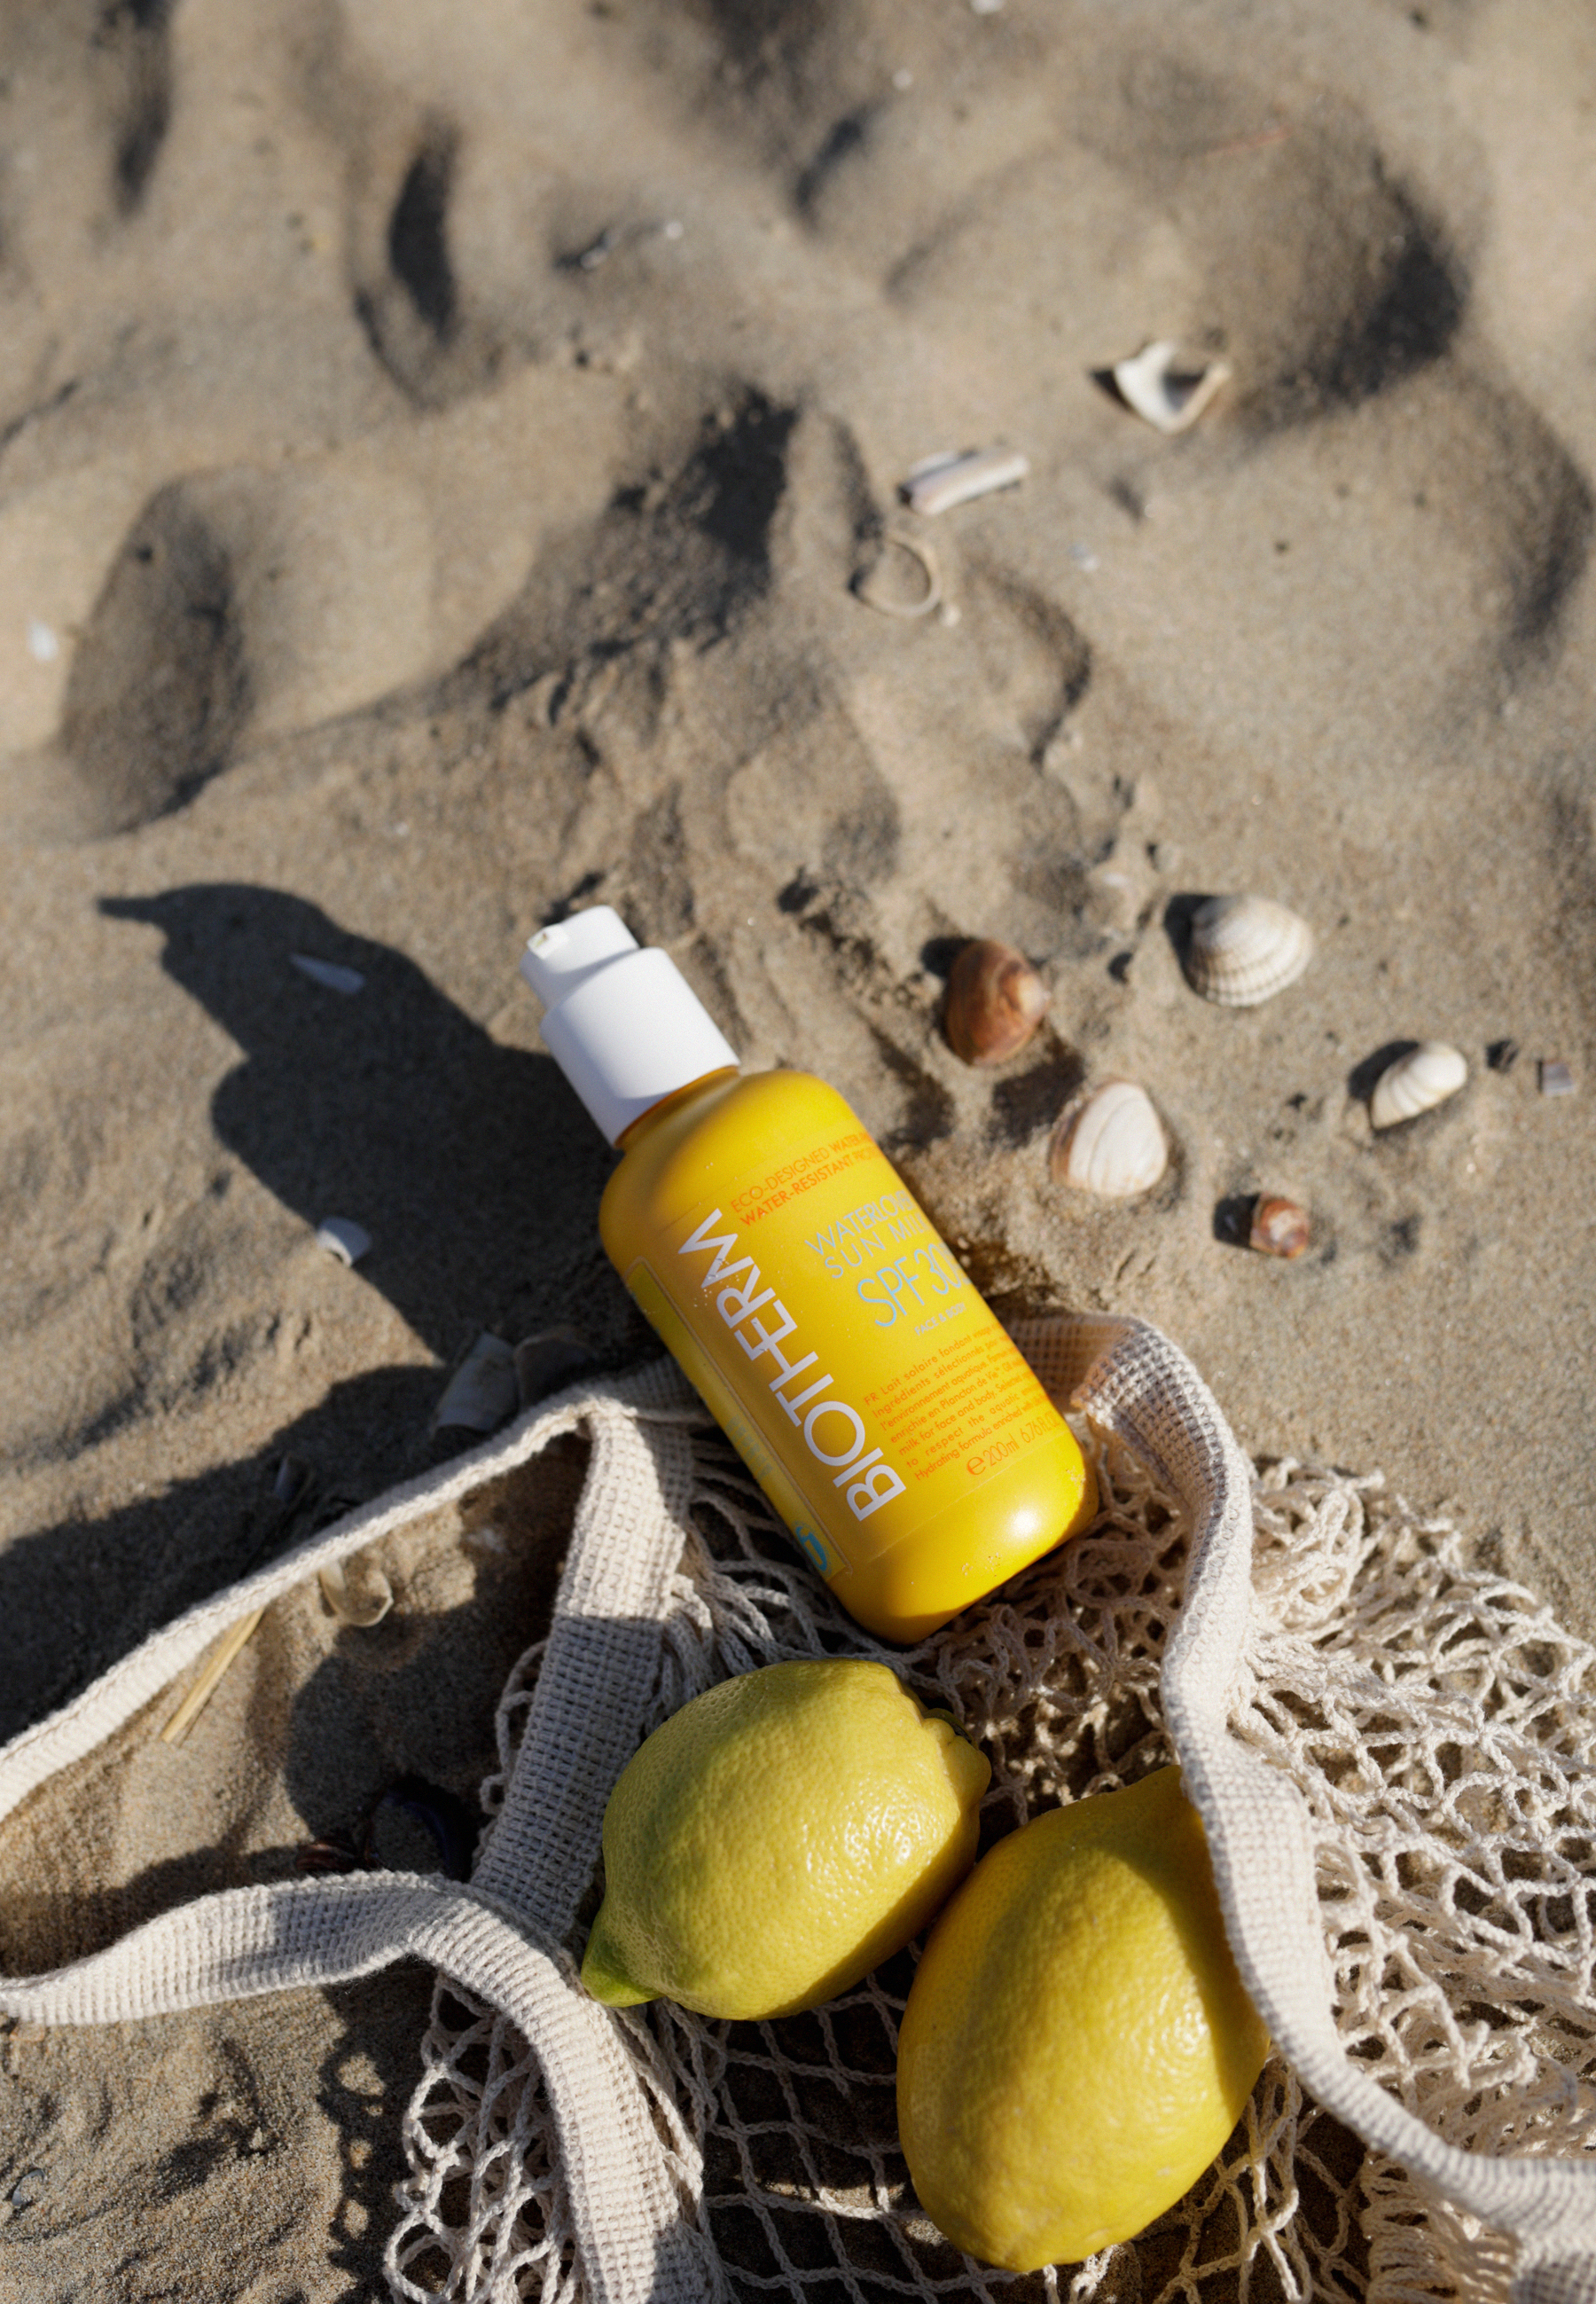 beauty at the beach lemon biotherm sun waterlovers suncare skincare sunblock beachlife beachvacation diptyque skincare eos crystal lip balm bikini swimwear beautyblogger beautybloggers catsanddogsblog ricarda schernus beautyblogger düsseldorf catsdogs 6